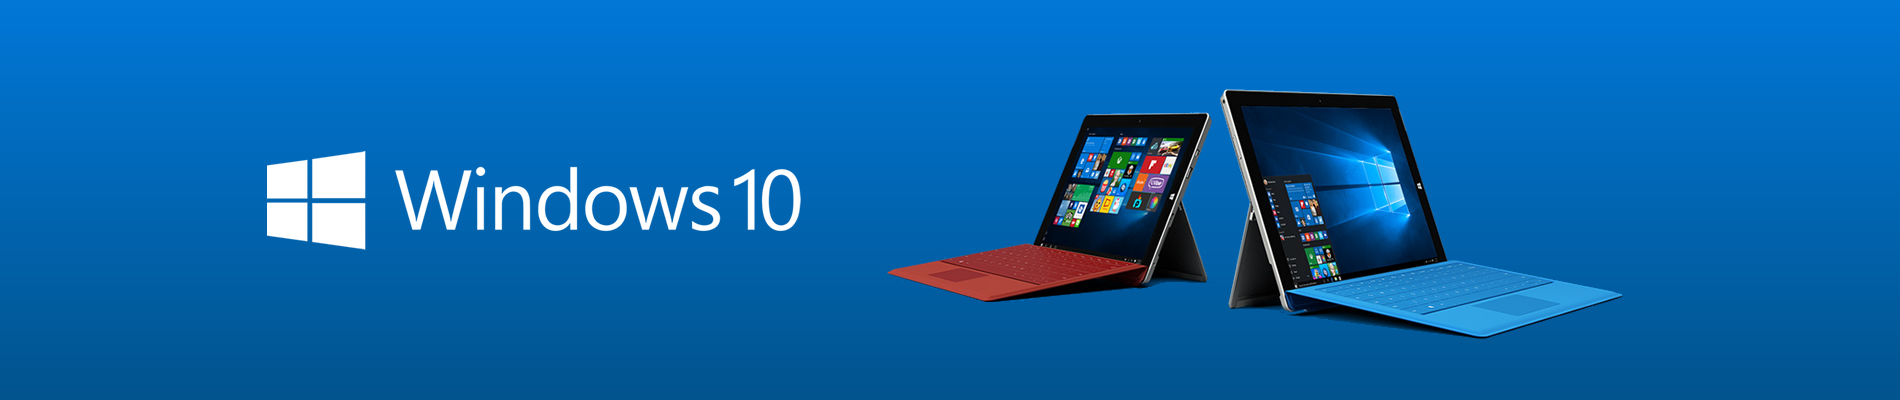 slider-2019-windows10